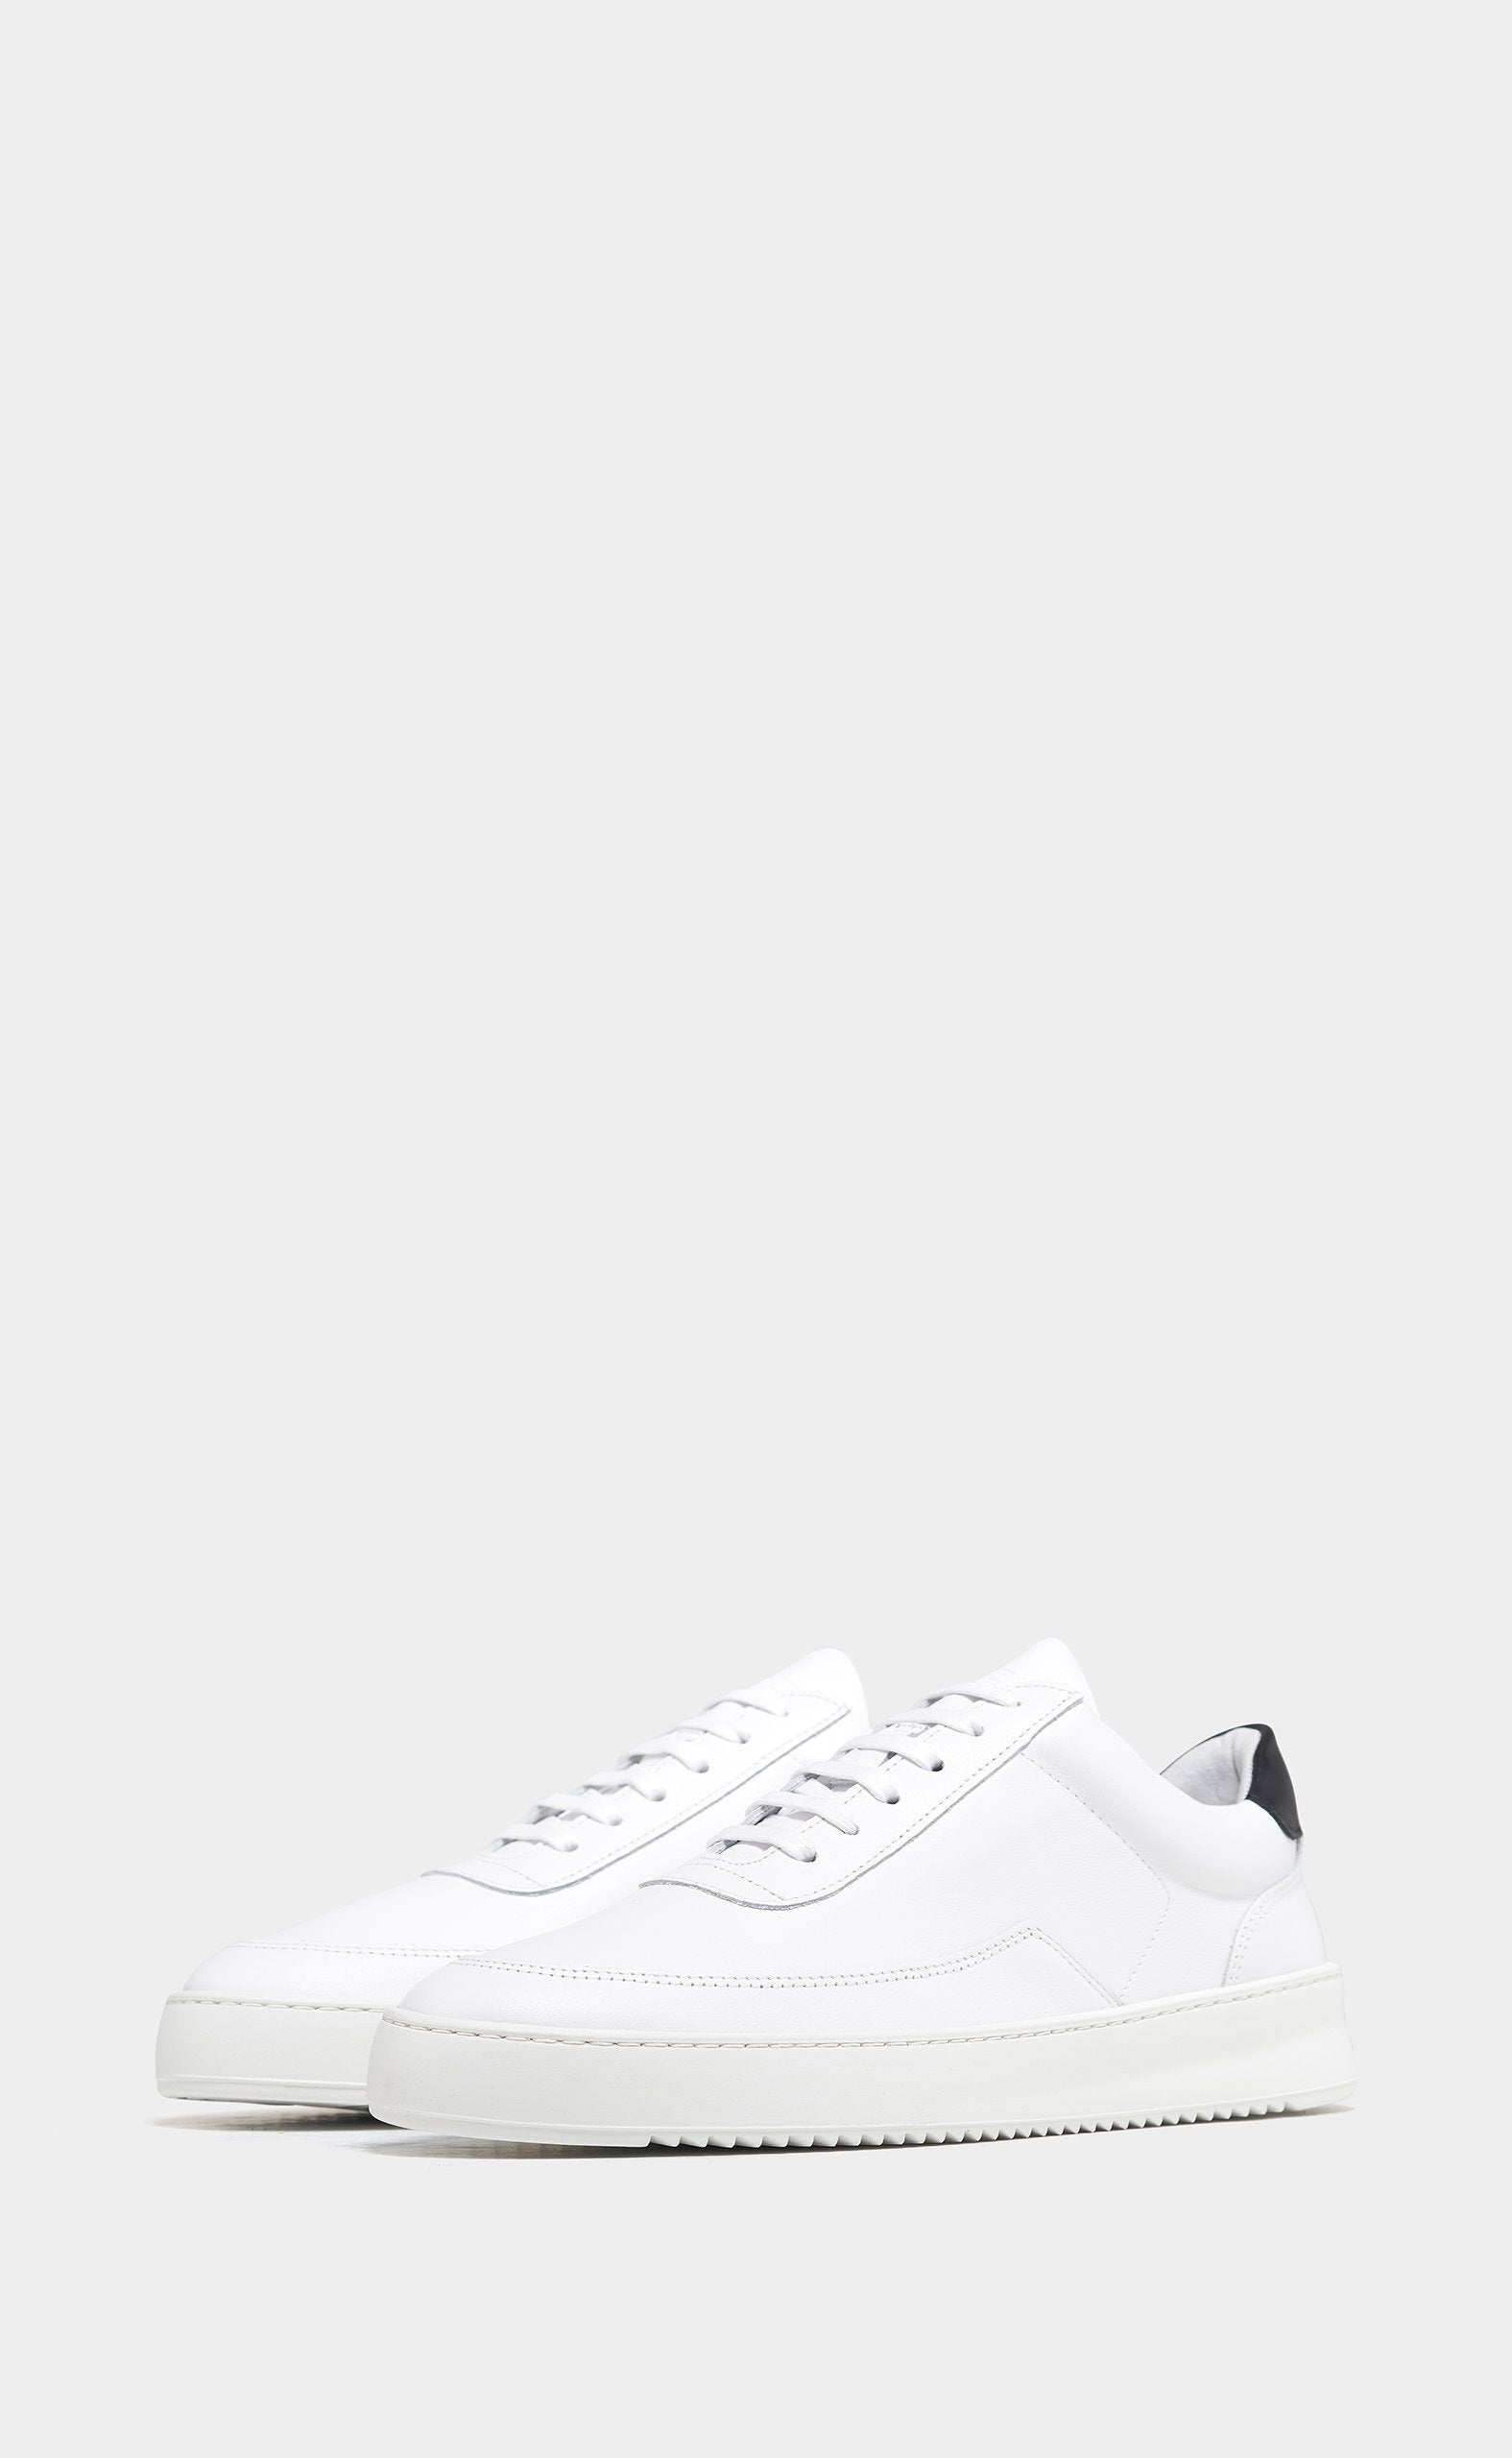 Mondo Ripple Nappa White/Black